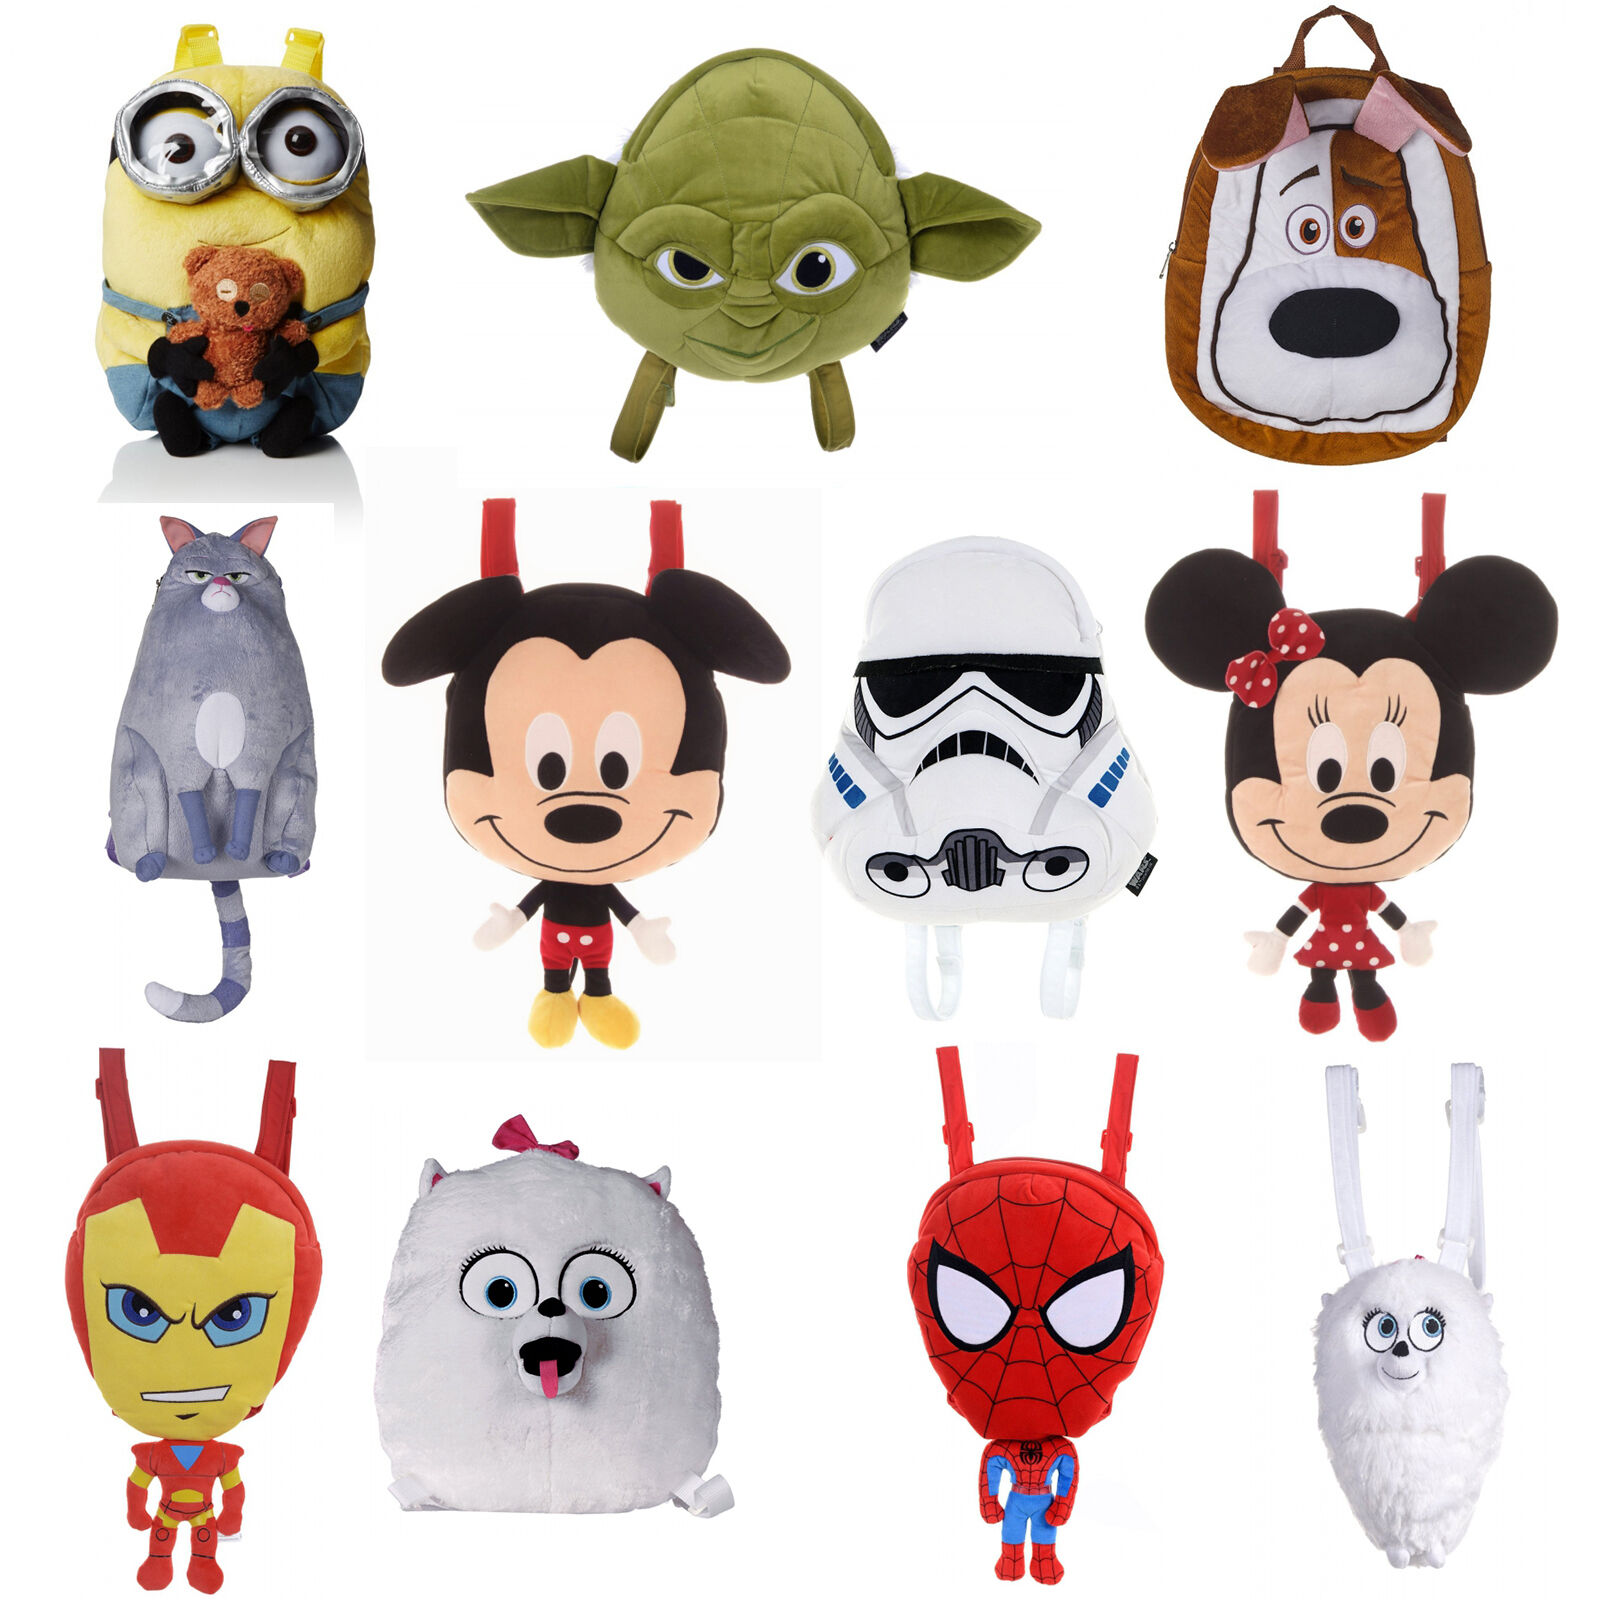 Soft Toys With Pockets : Kids disney tv movie character plush soft toy school